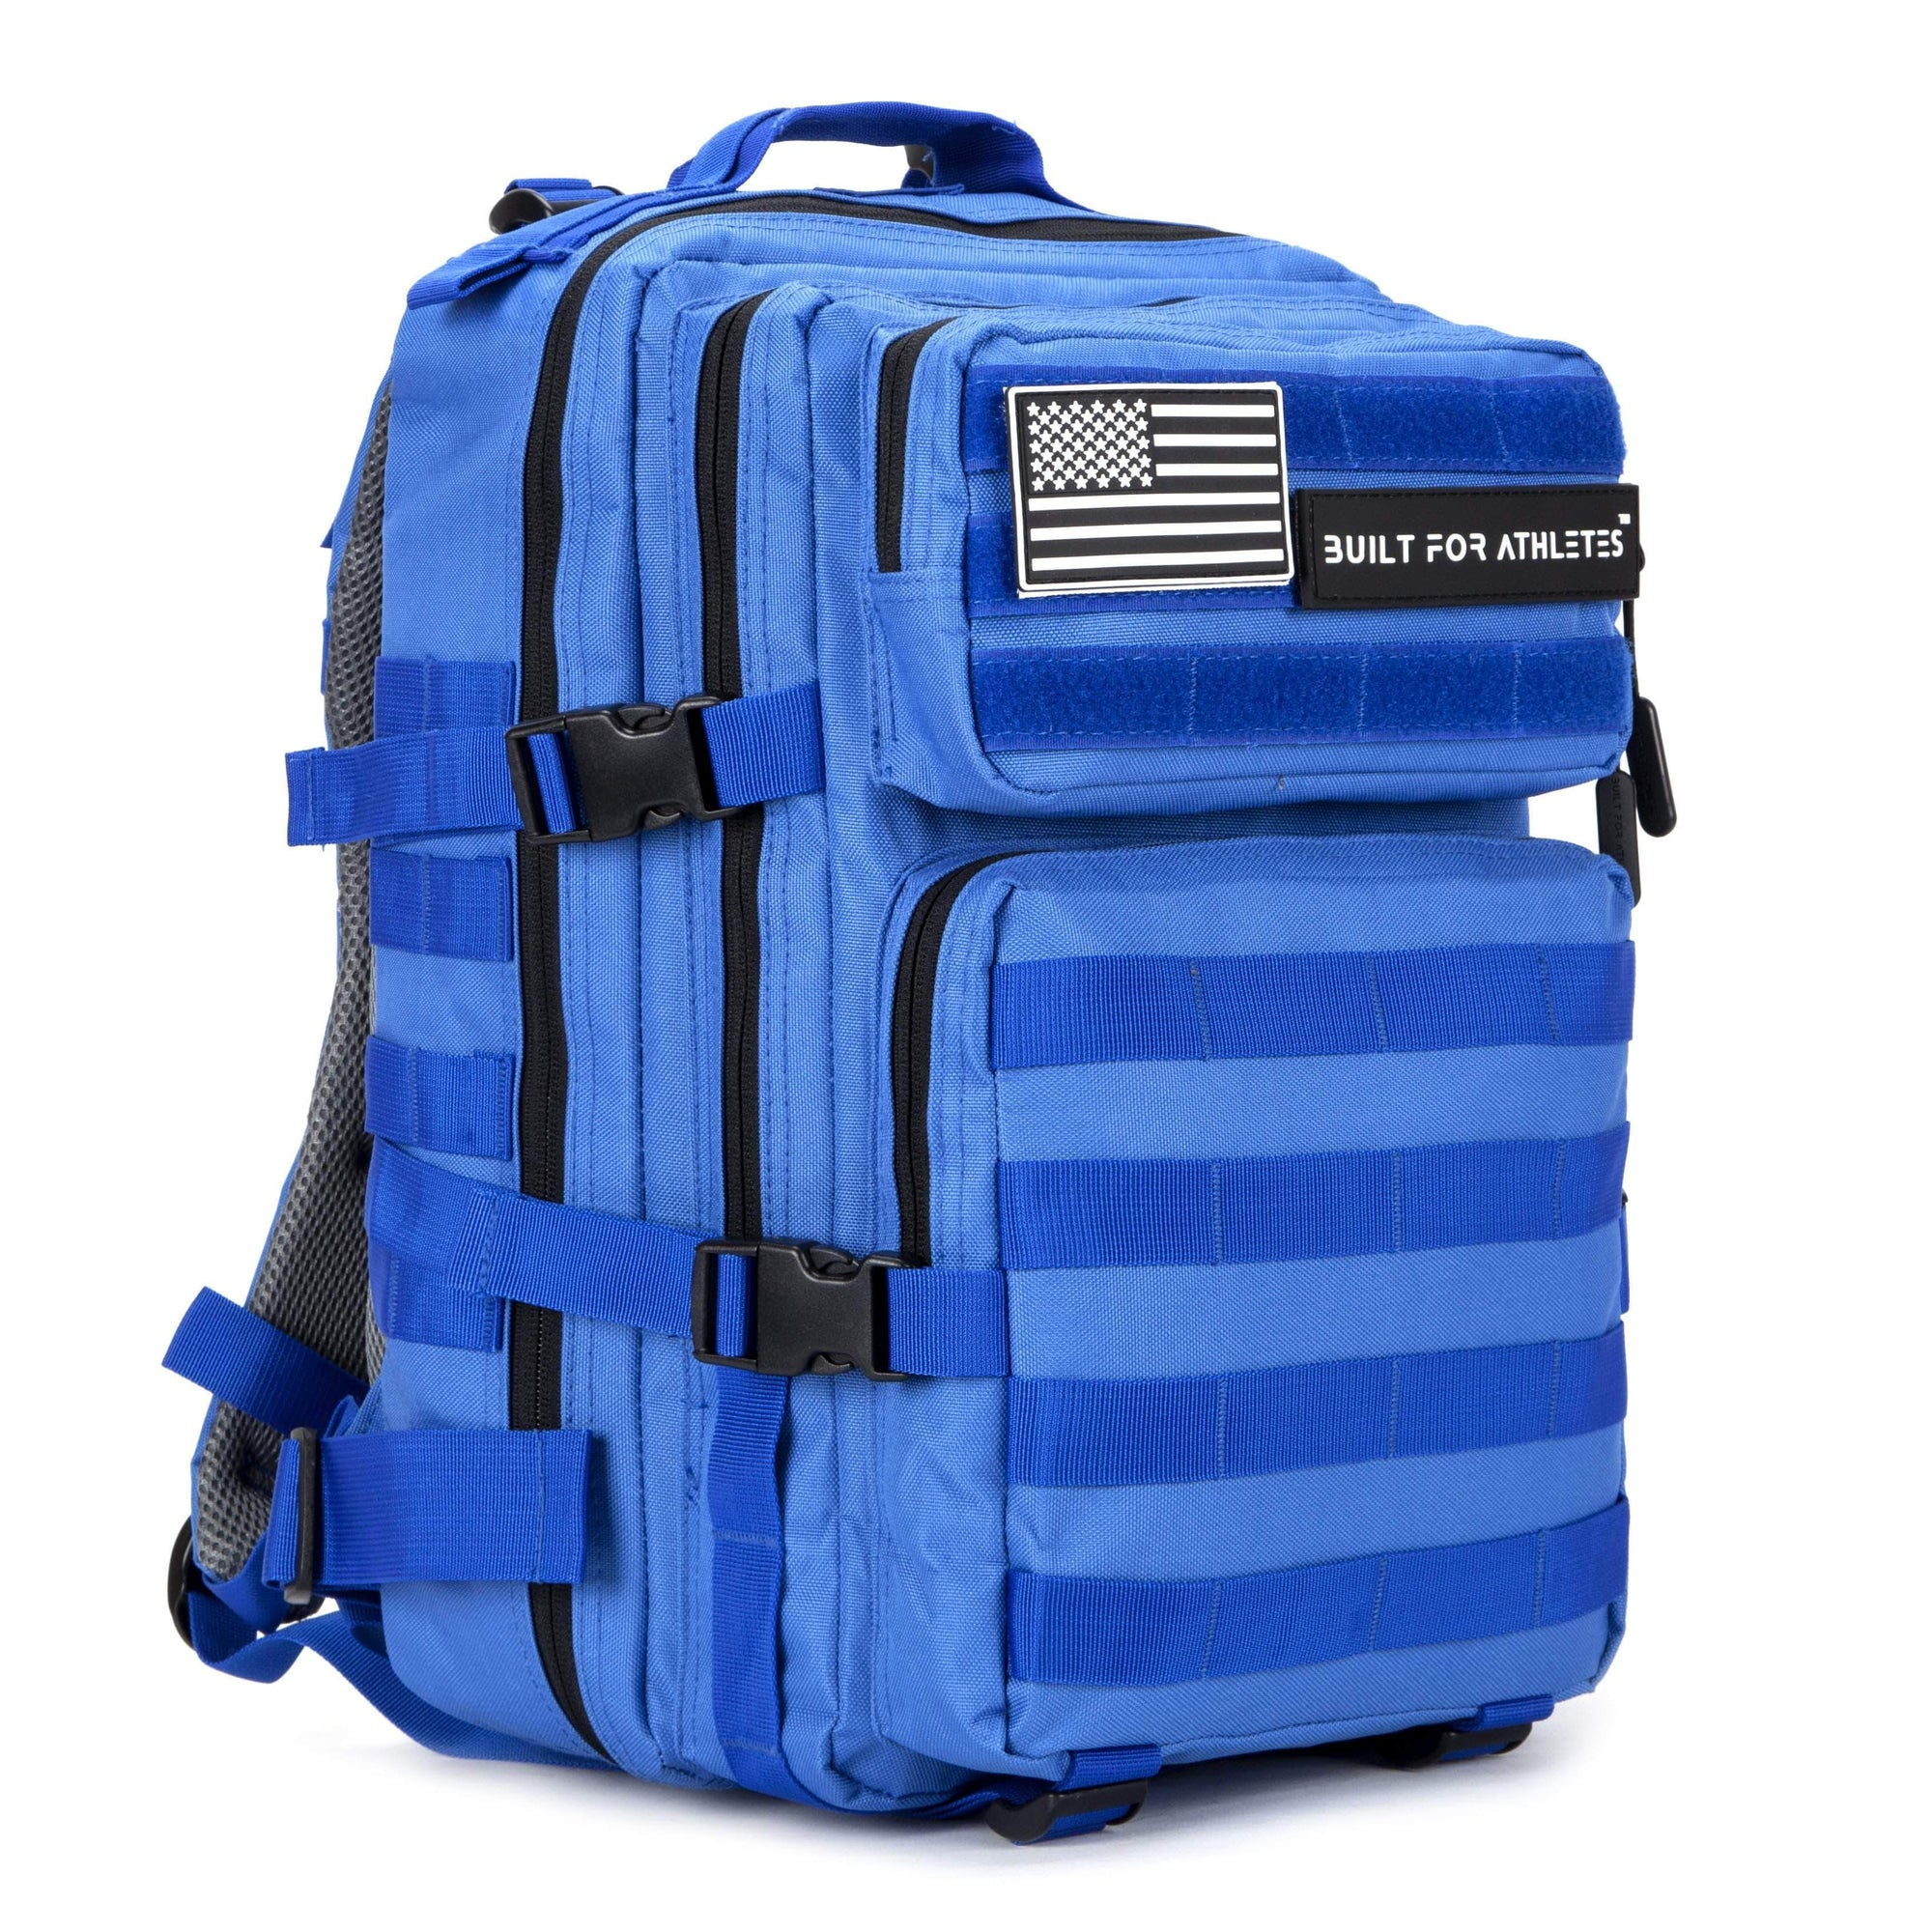 Built for Athletes Backpacks 25L Royal Blue Hero Backpack